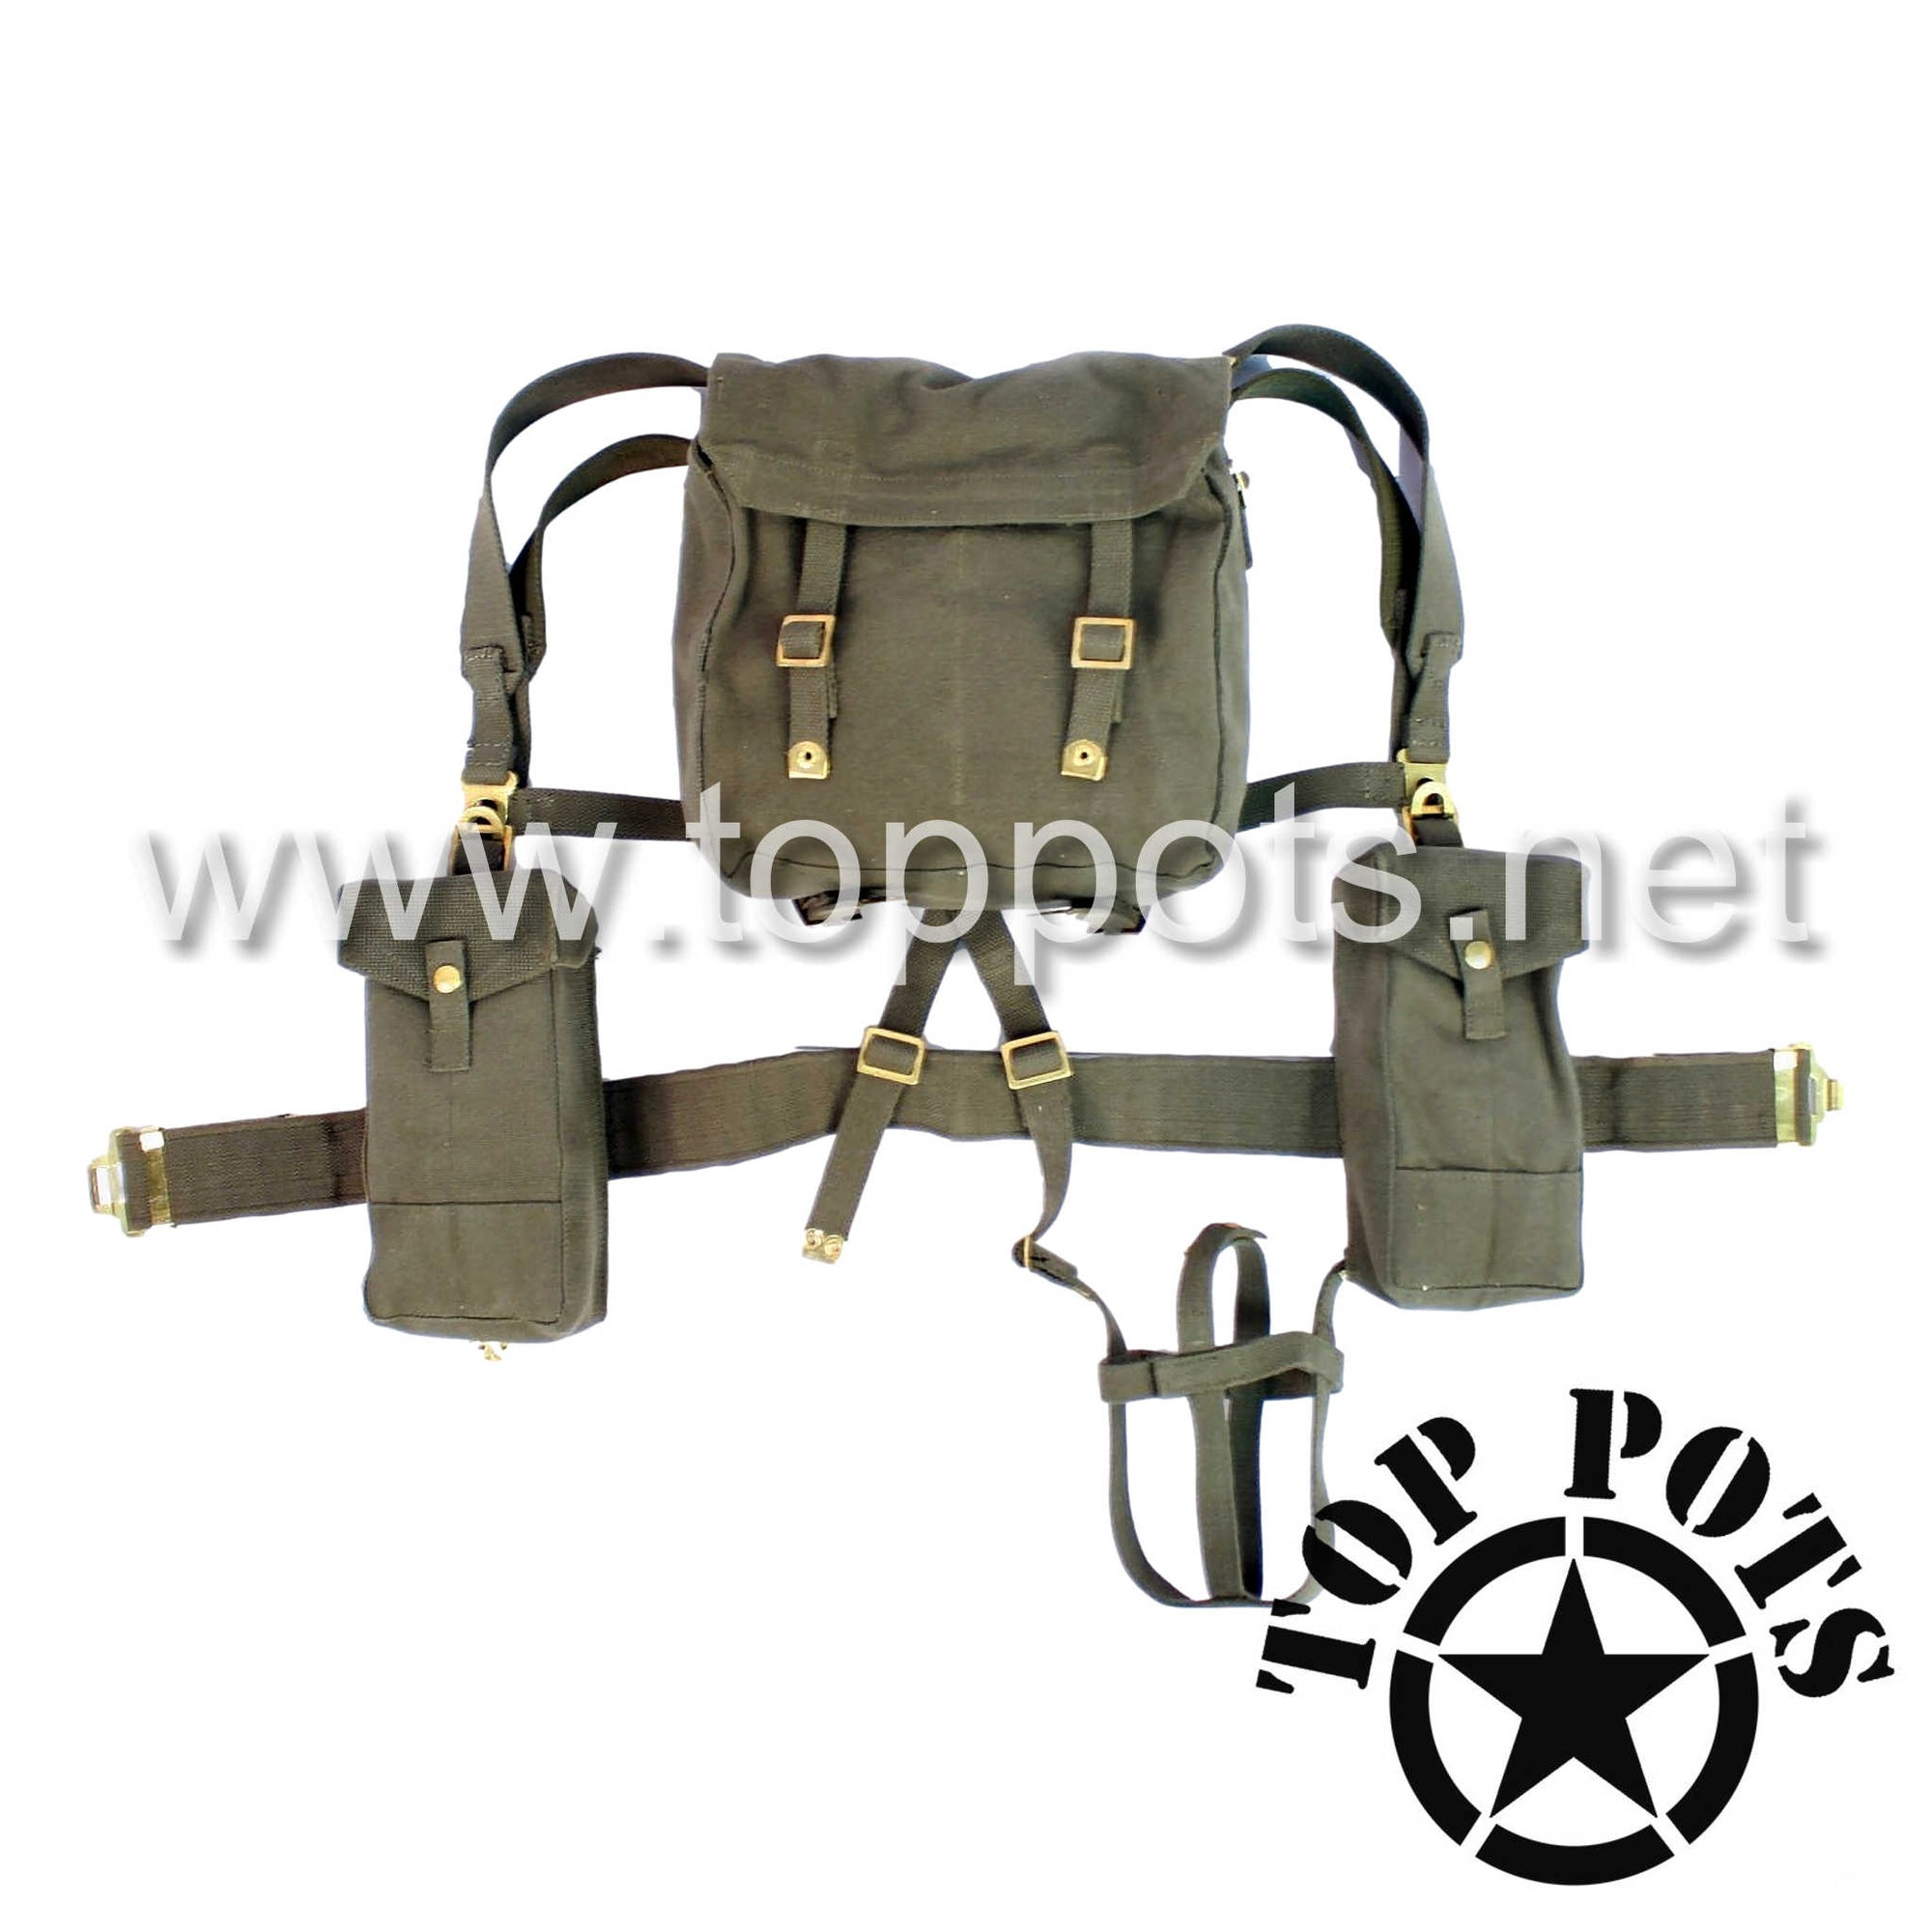 WWII Australian Army Reproduction P37 Canvas Battle Order Webbed Equipment Set – Khaki Green Webbing